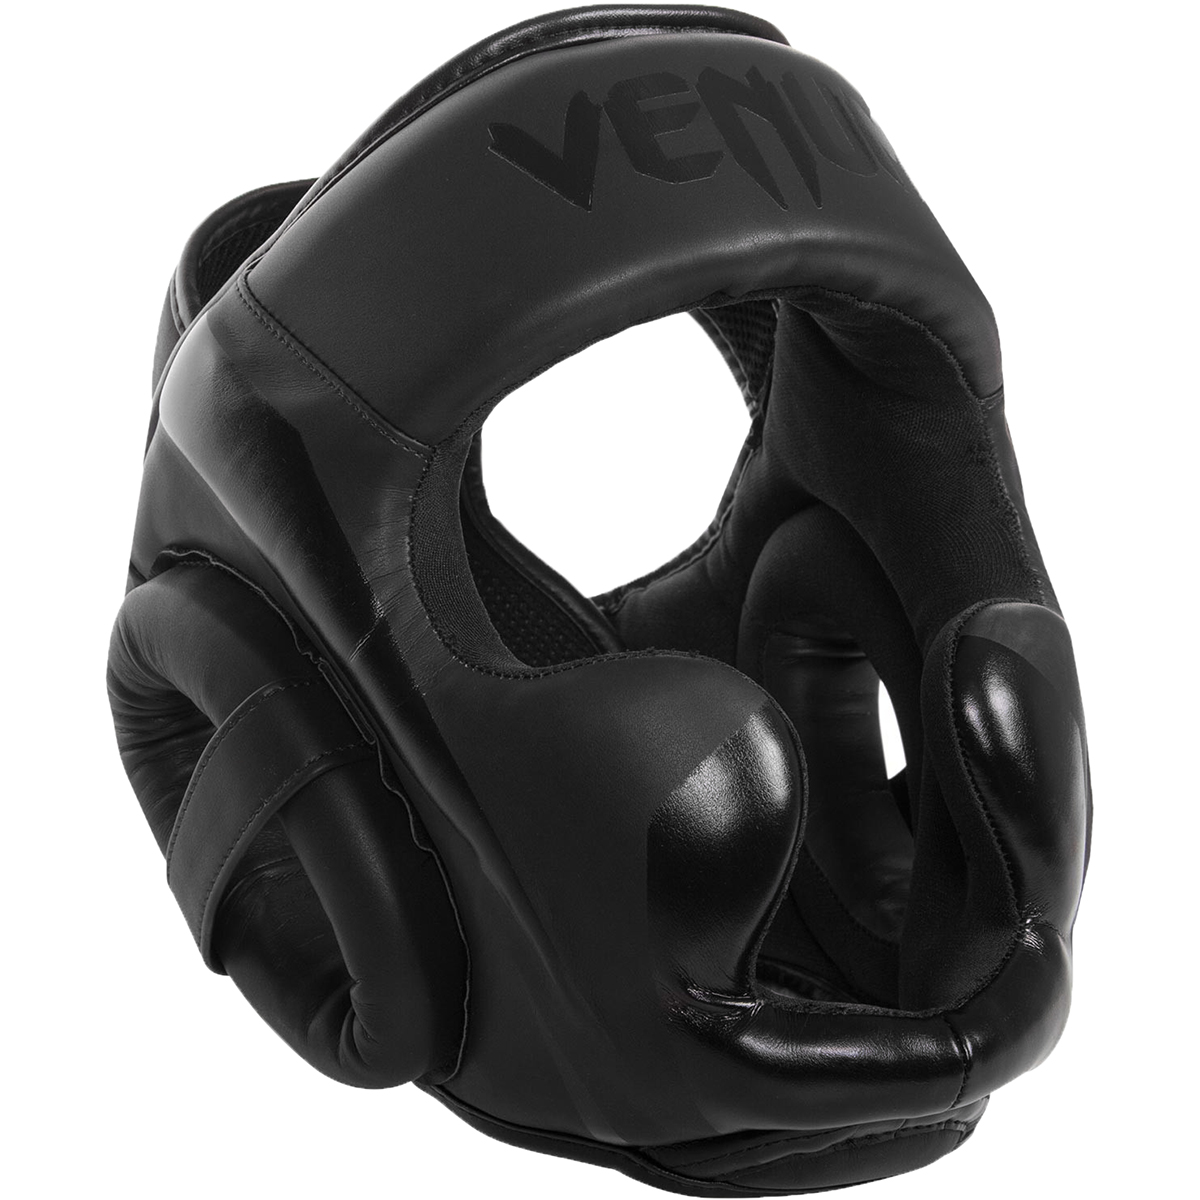 Venum-Elite-Boxing-Headgear thumbnail 3